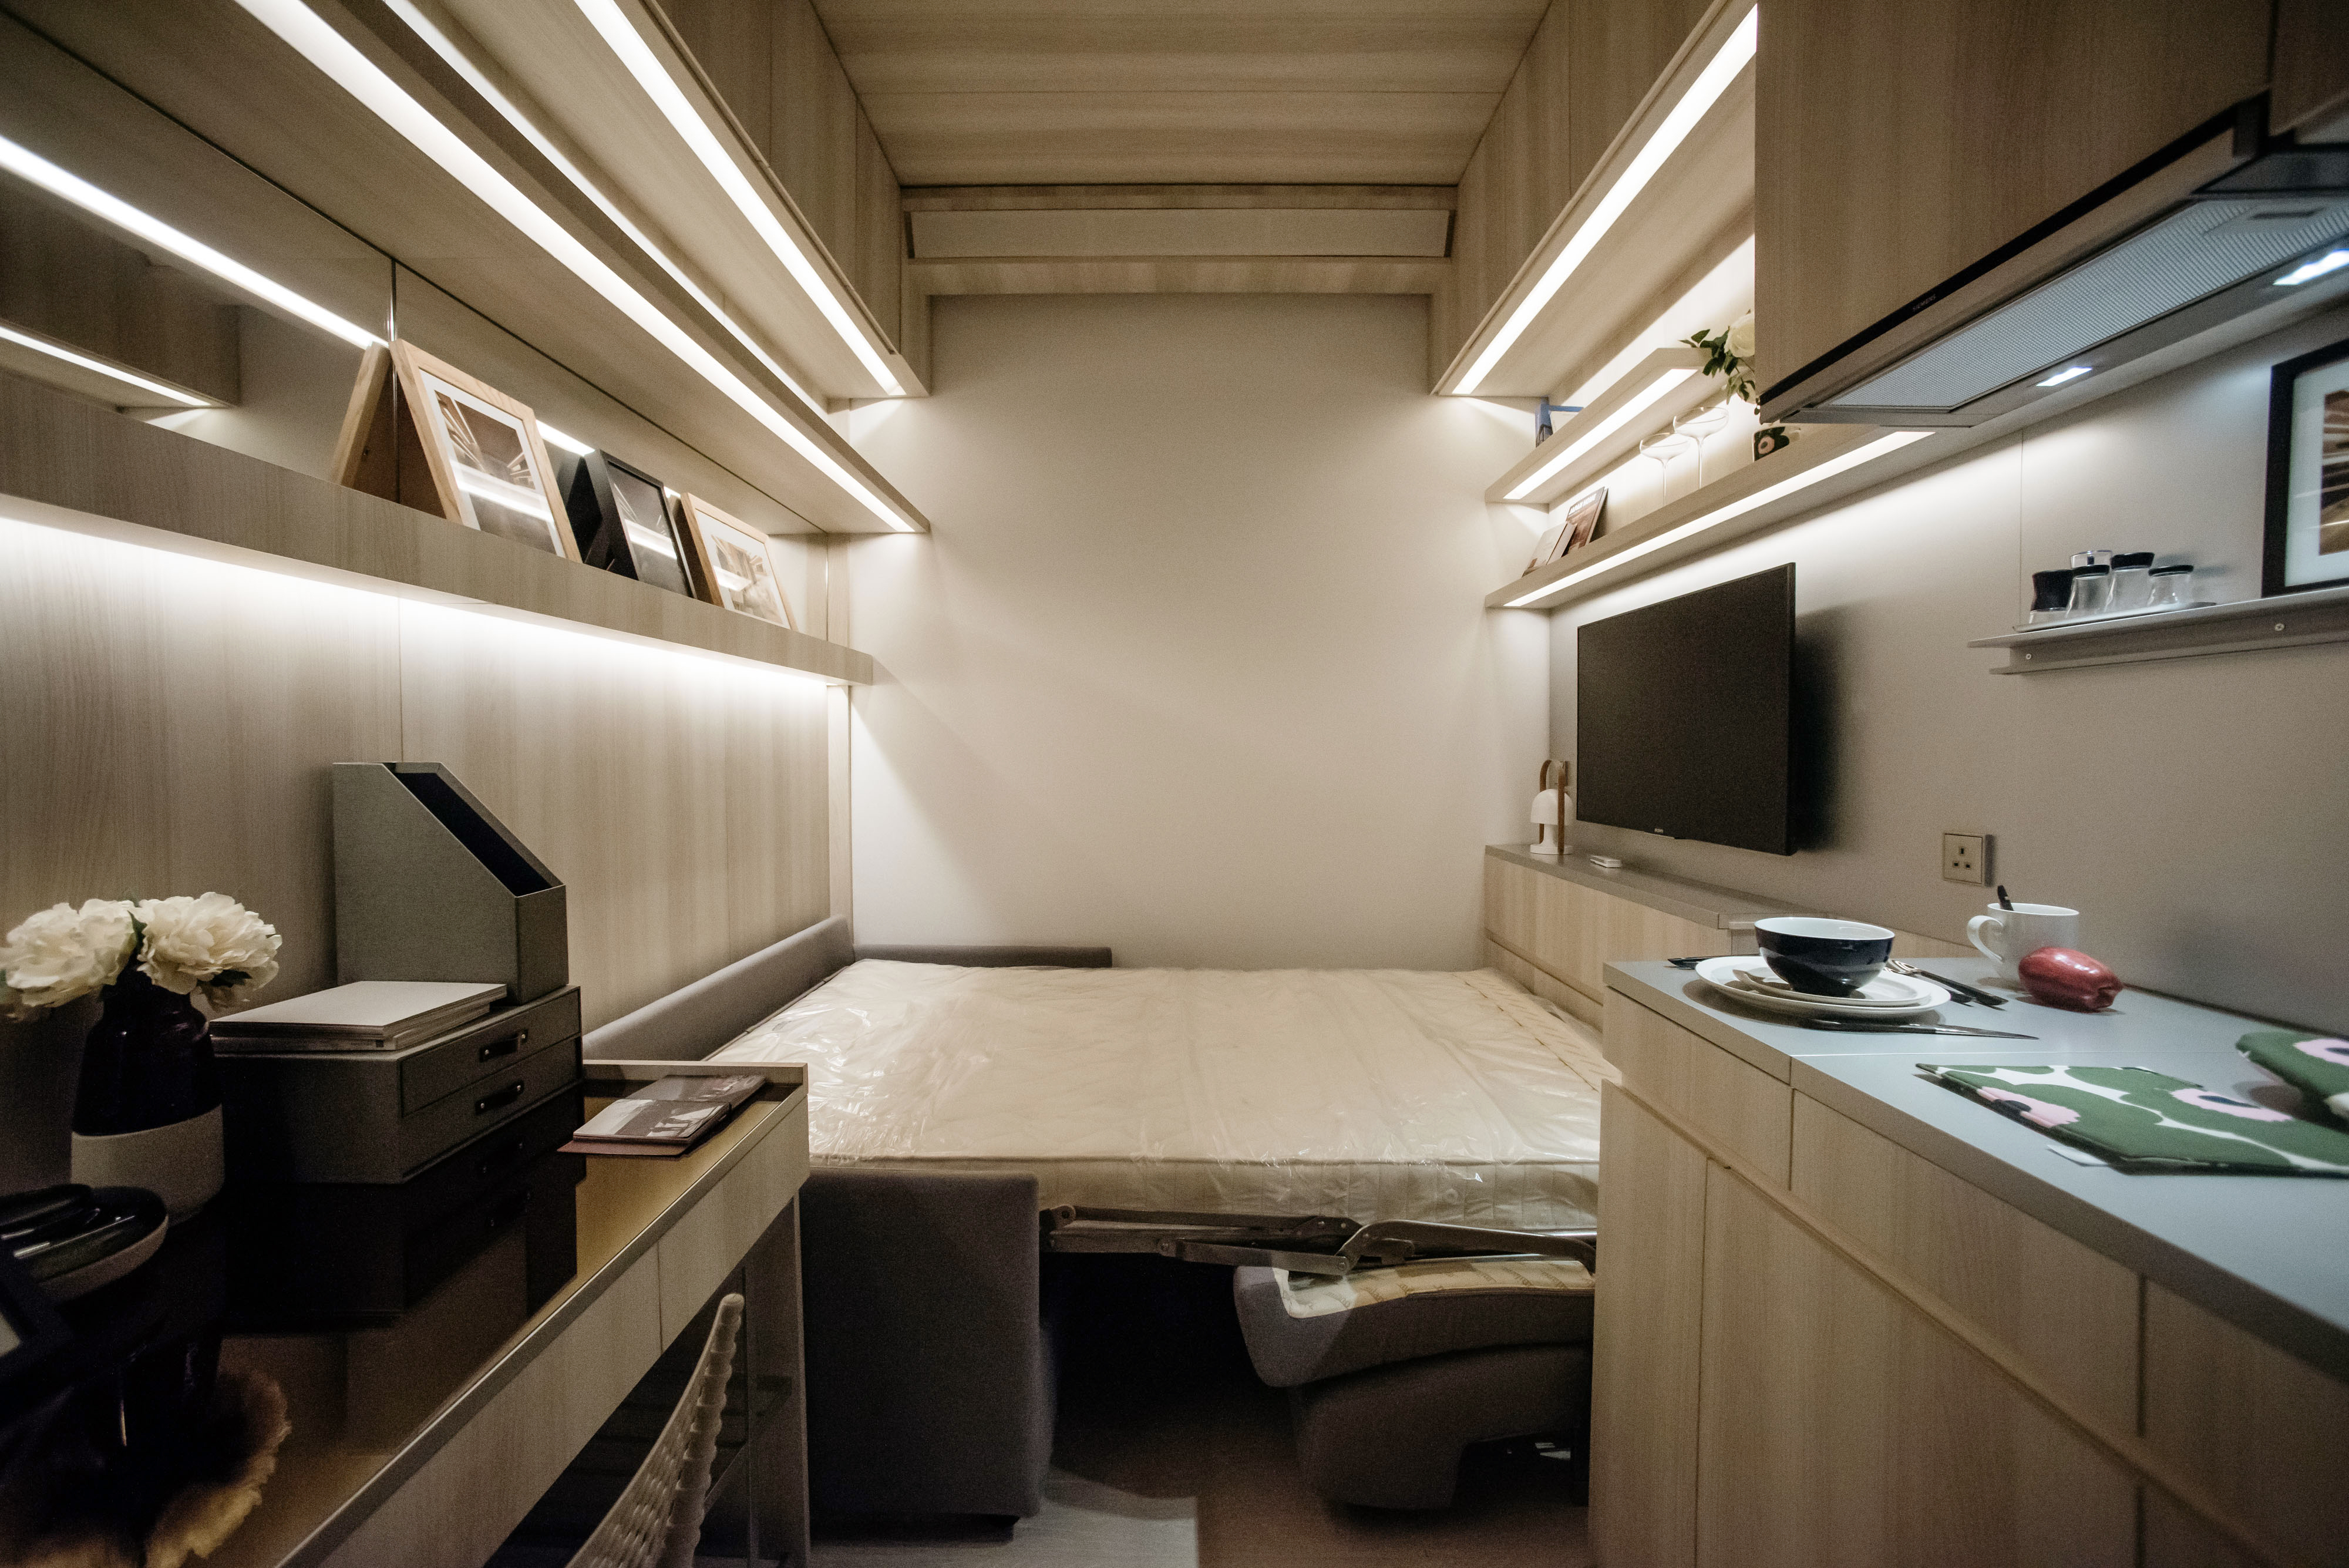 Prison Cell Flats in Hong Kong Show Limits of Home Supply Policy